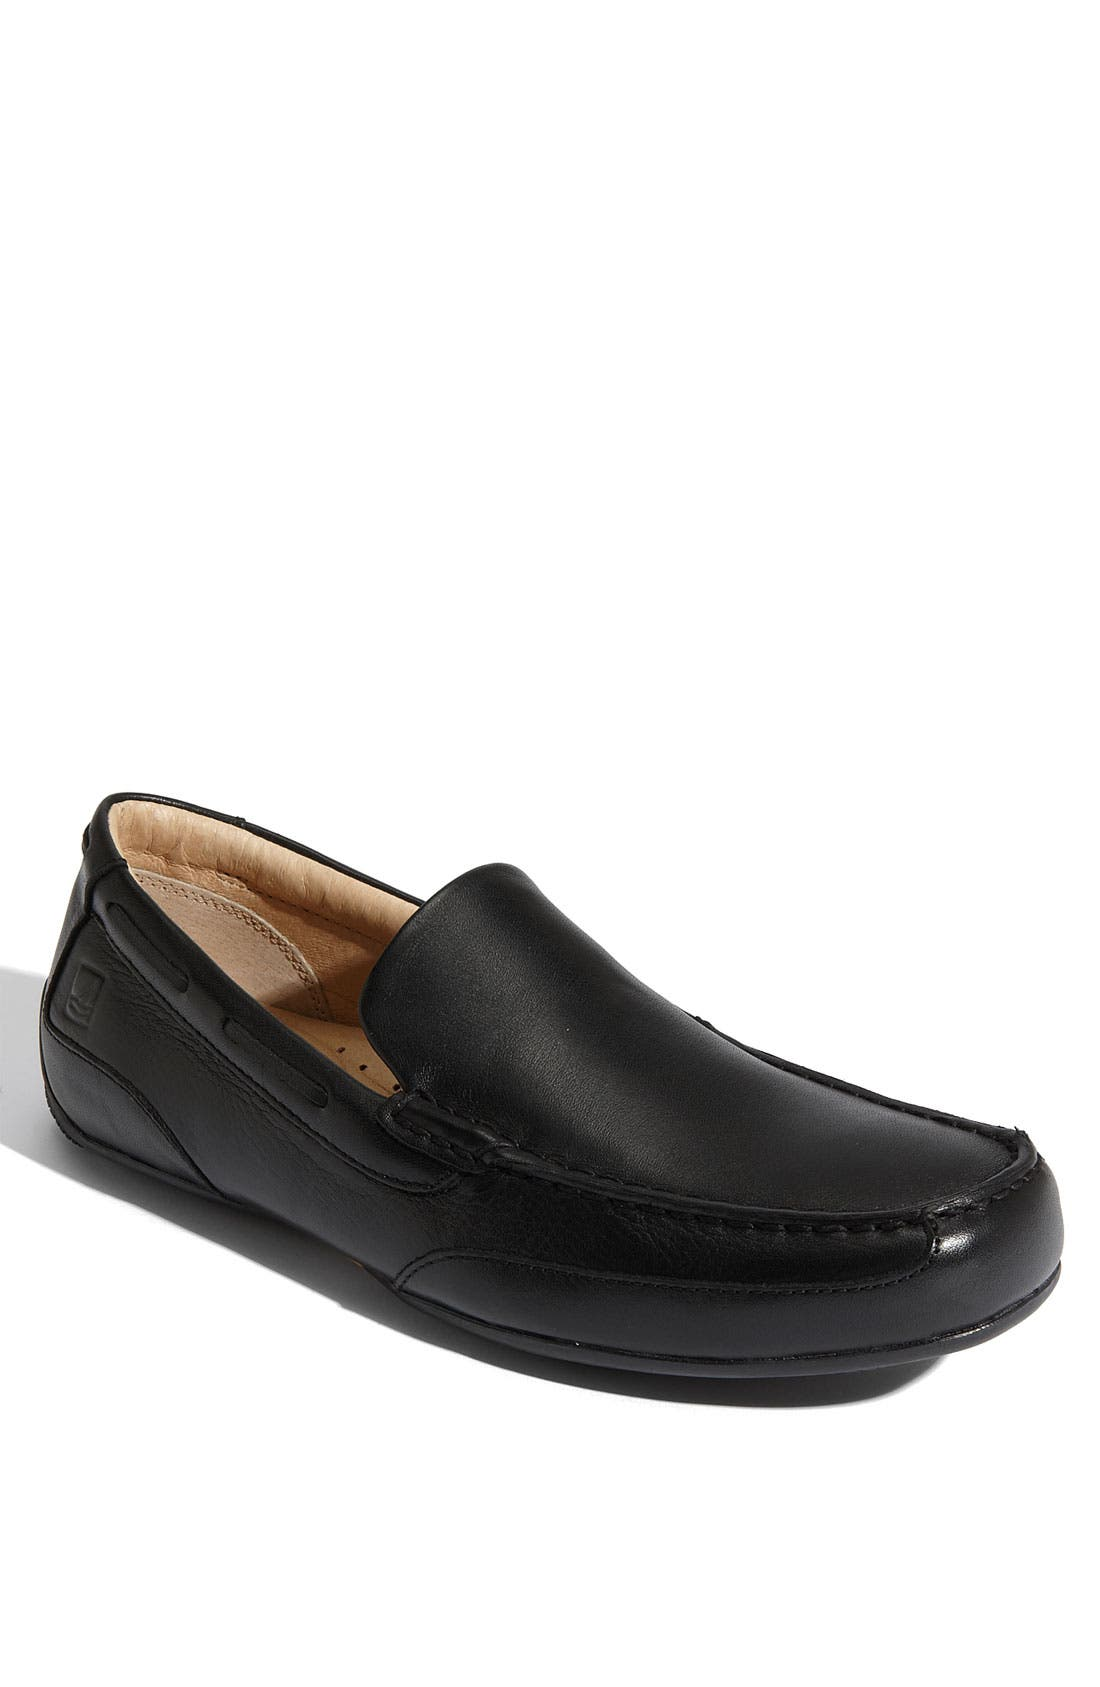 Top-Sider<sup>®</sup> 'Navigator Venetian' Driving Shoe,                             Main thumbnail 1, color,                             001